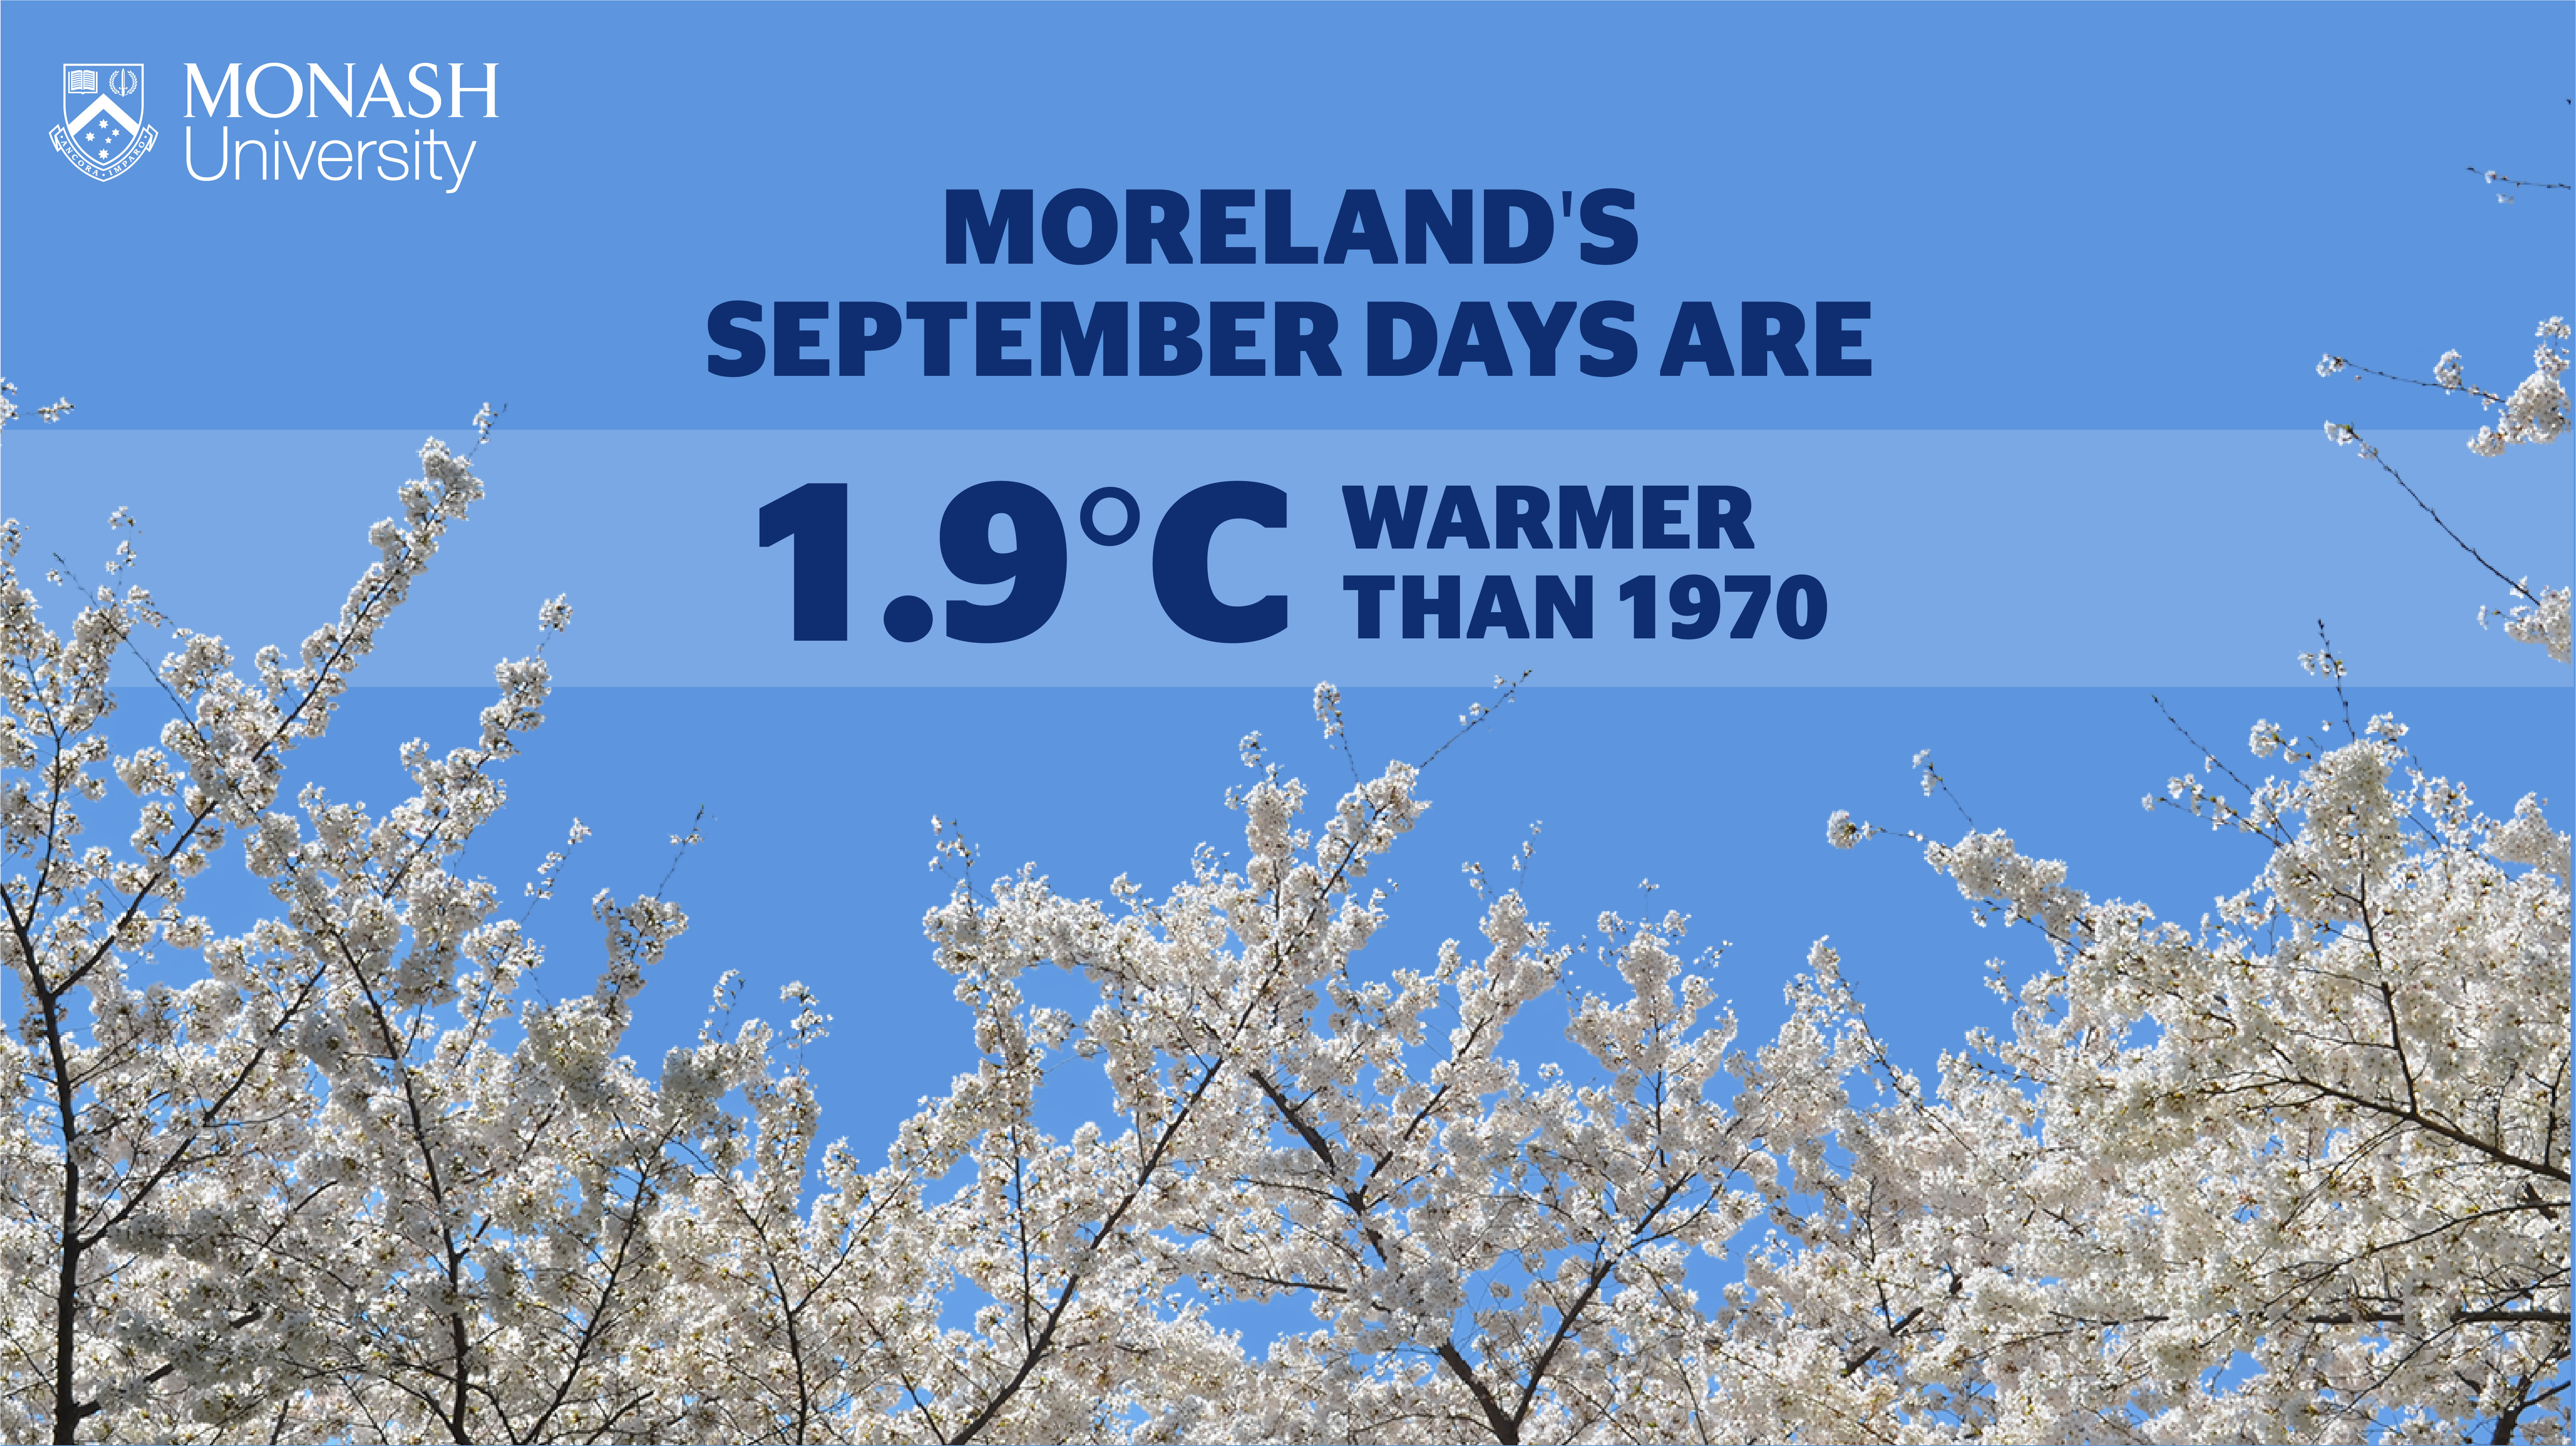 Arctic sea ice melting at an unprecedented rate – meanwhile temperatures continue to rise in Moreland